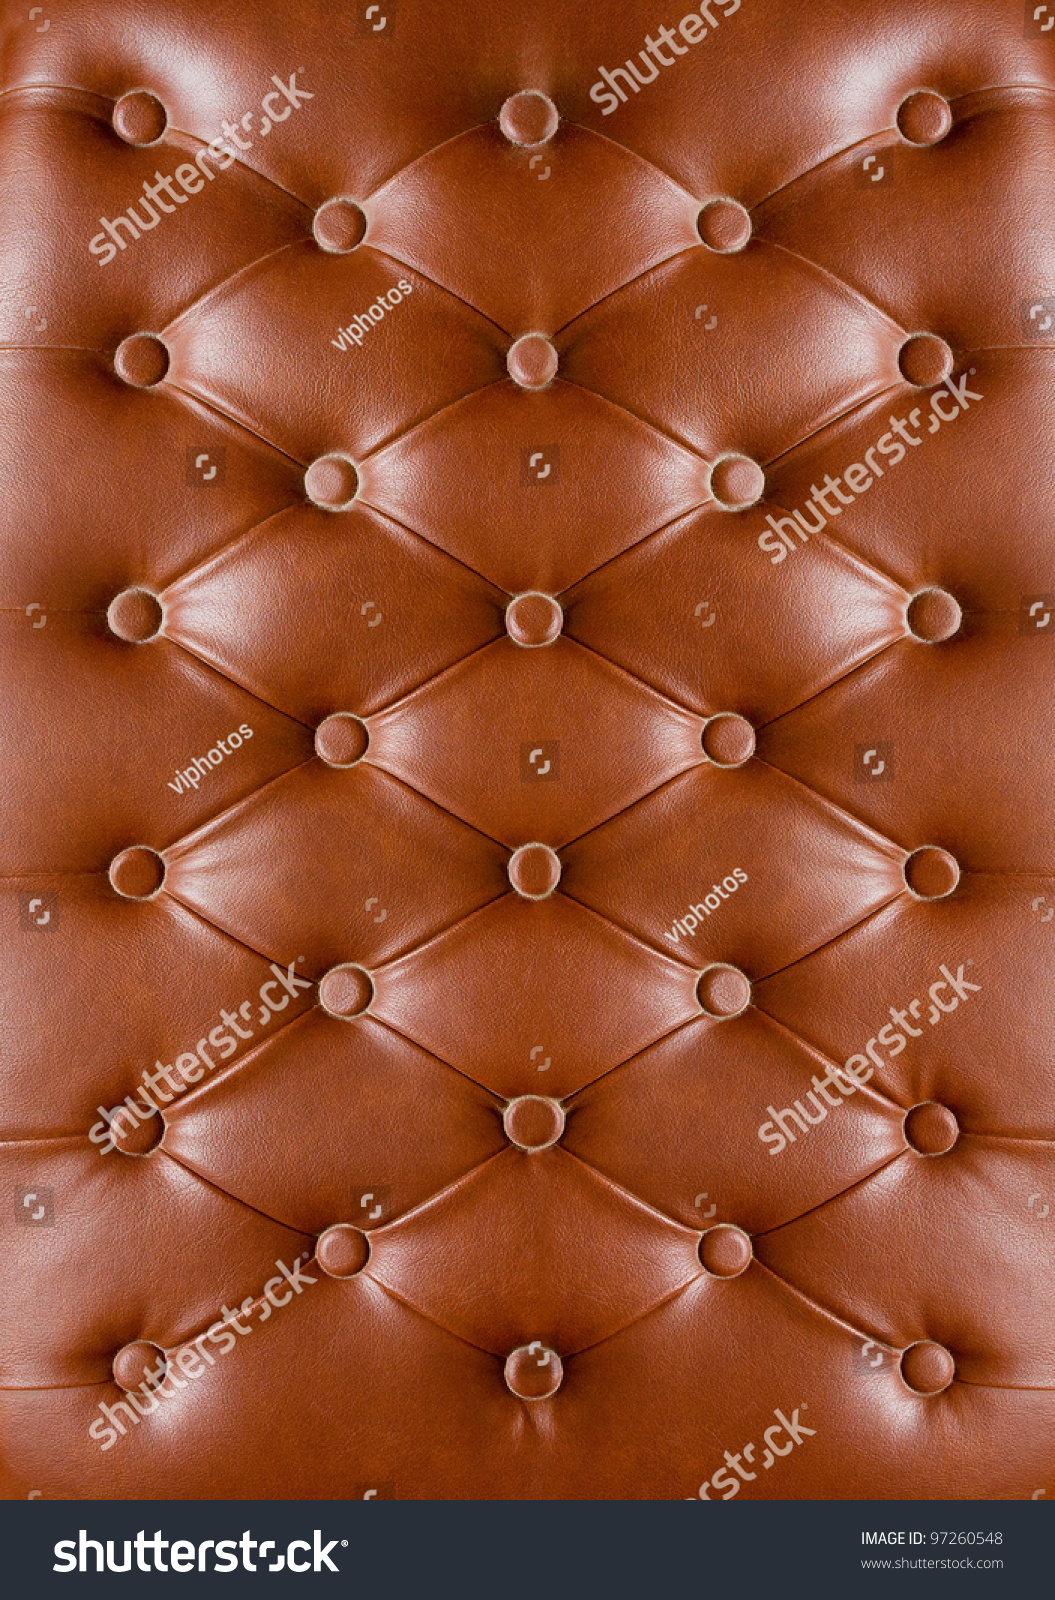 Leather cushion texture - Closeup Texture Of Vintage Brown Leather Sofa For Background